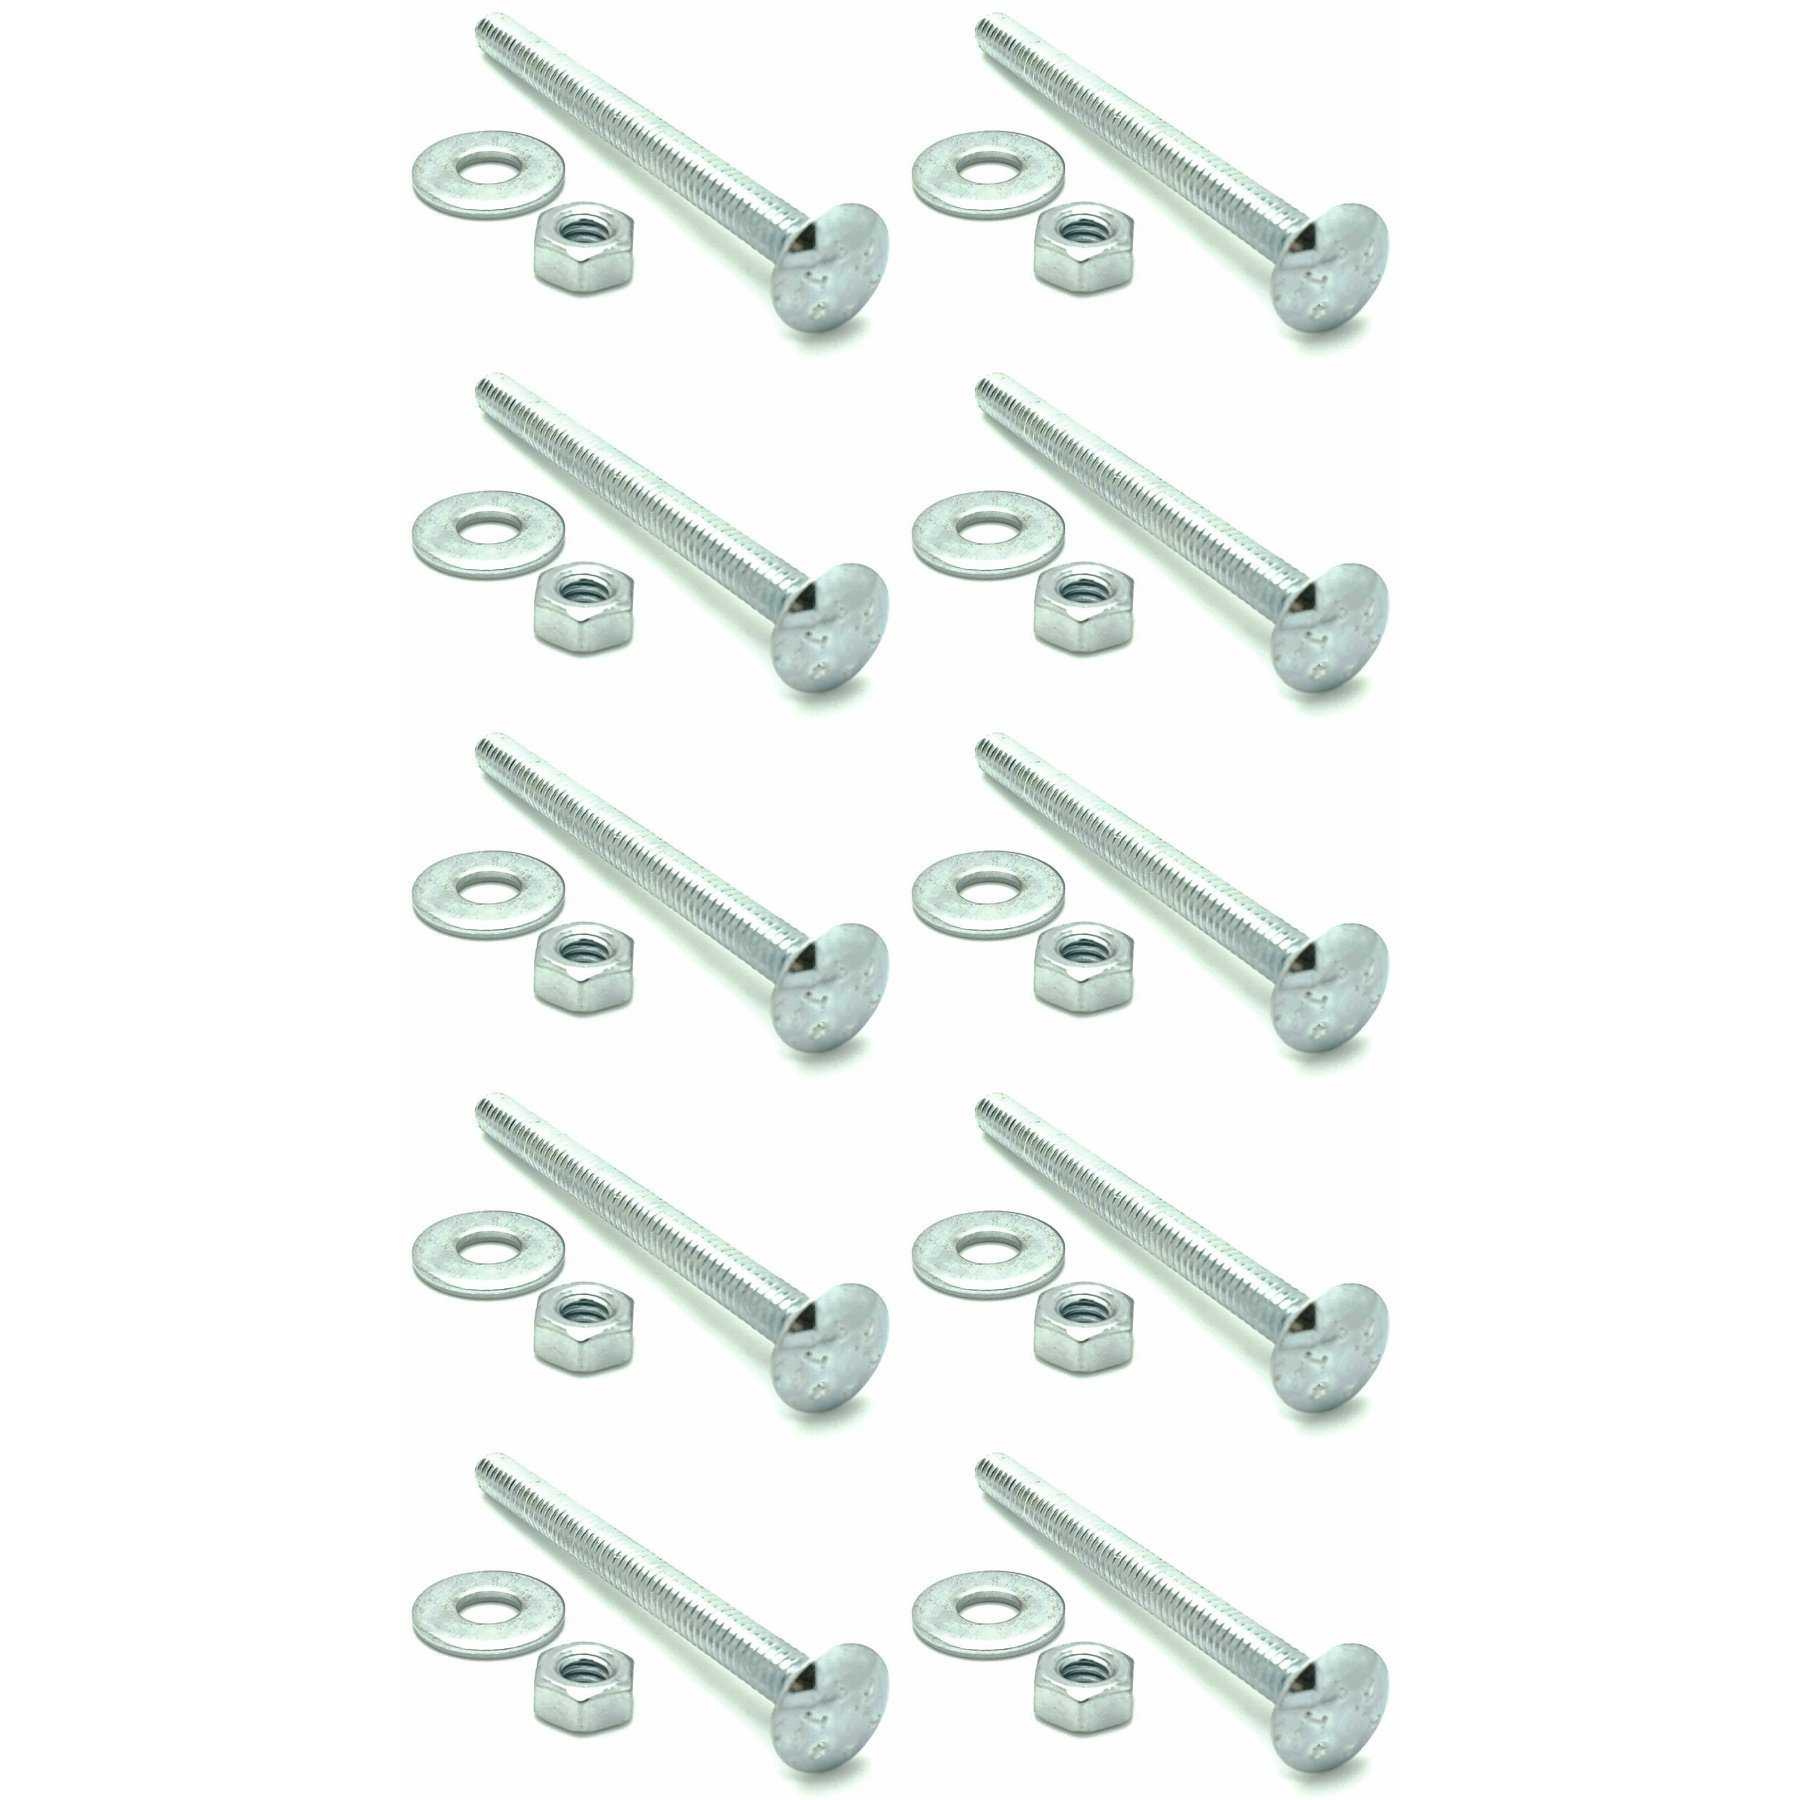 SNUG Fasteners (SNG328) Ten (10) 3/8-16 x 3'' Long Carriage Bolts Set w/Nuts & Washers by SNUG Fasteners (Image #1)